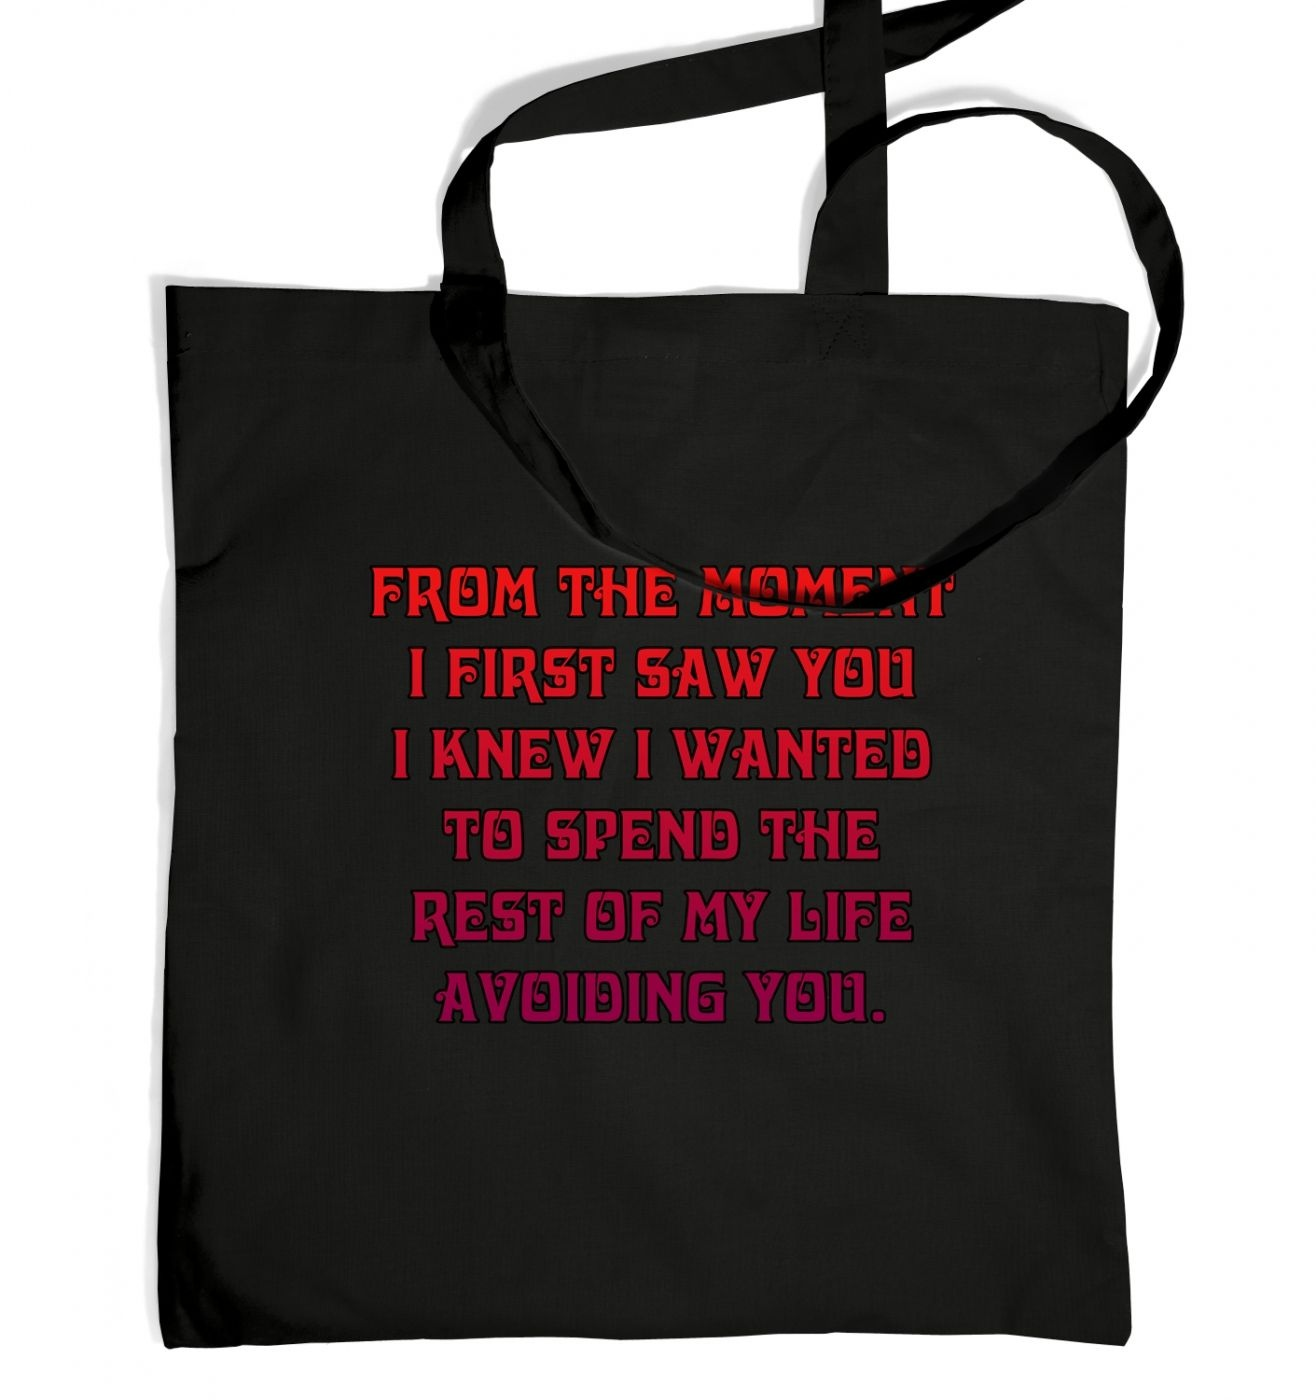 From the moment I first saw you tote bag